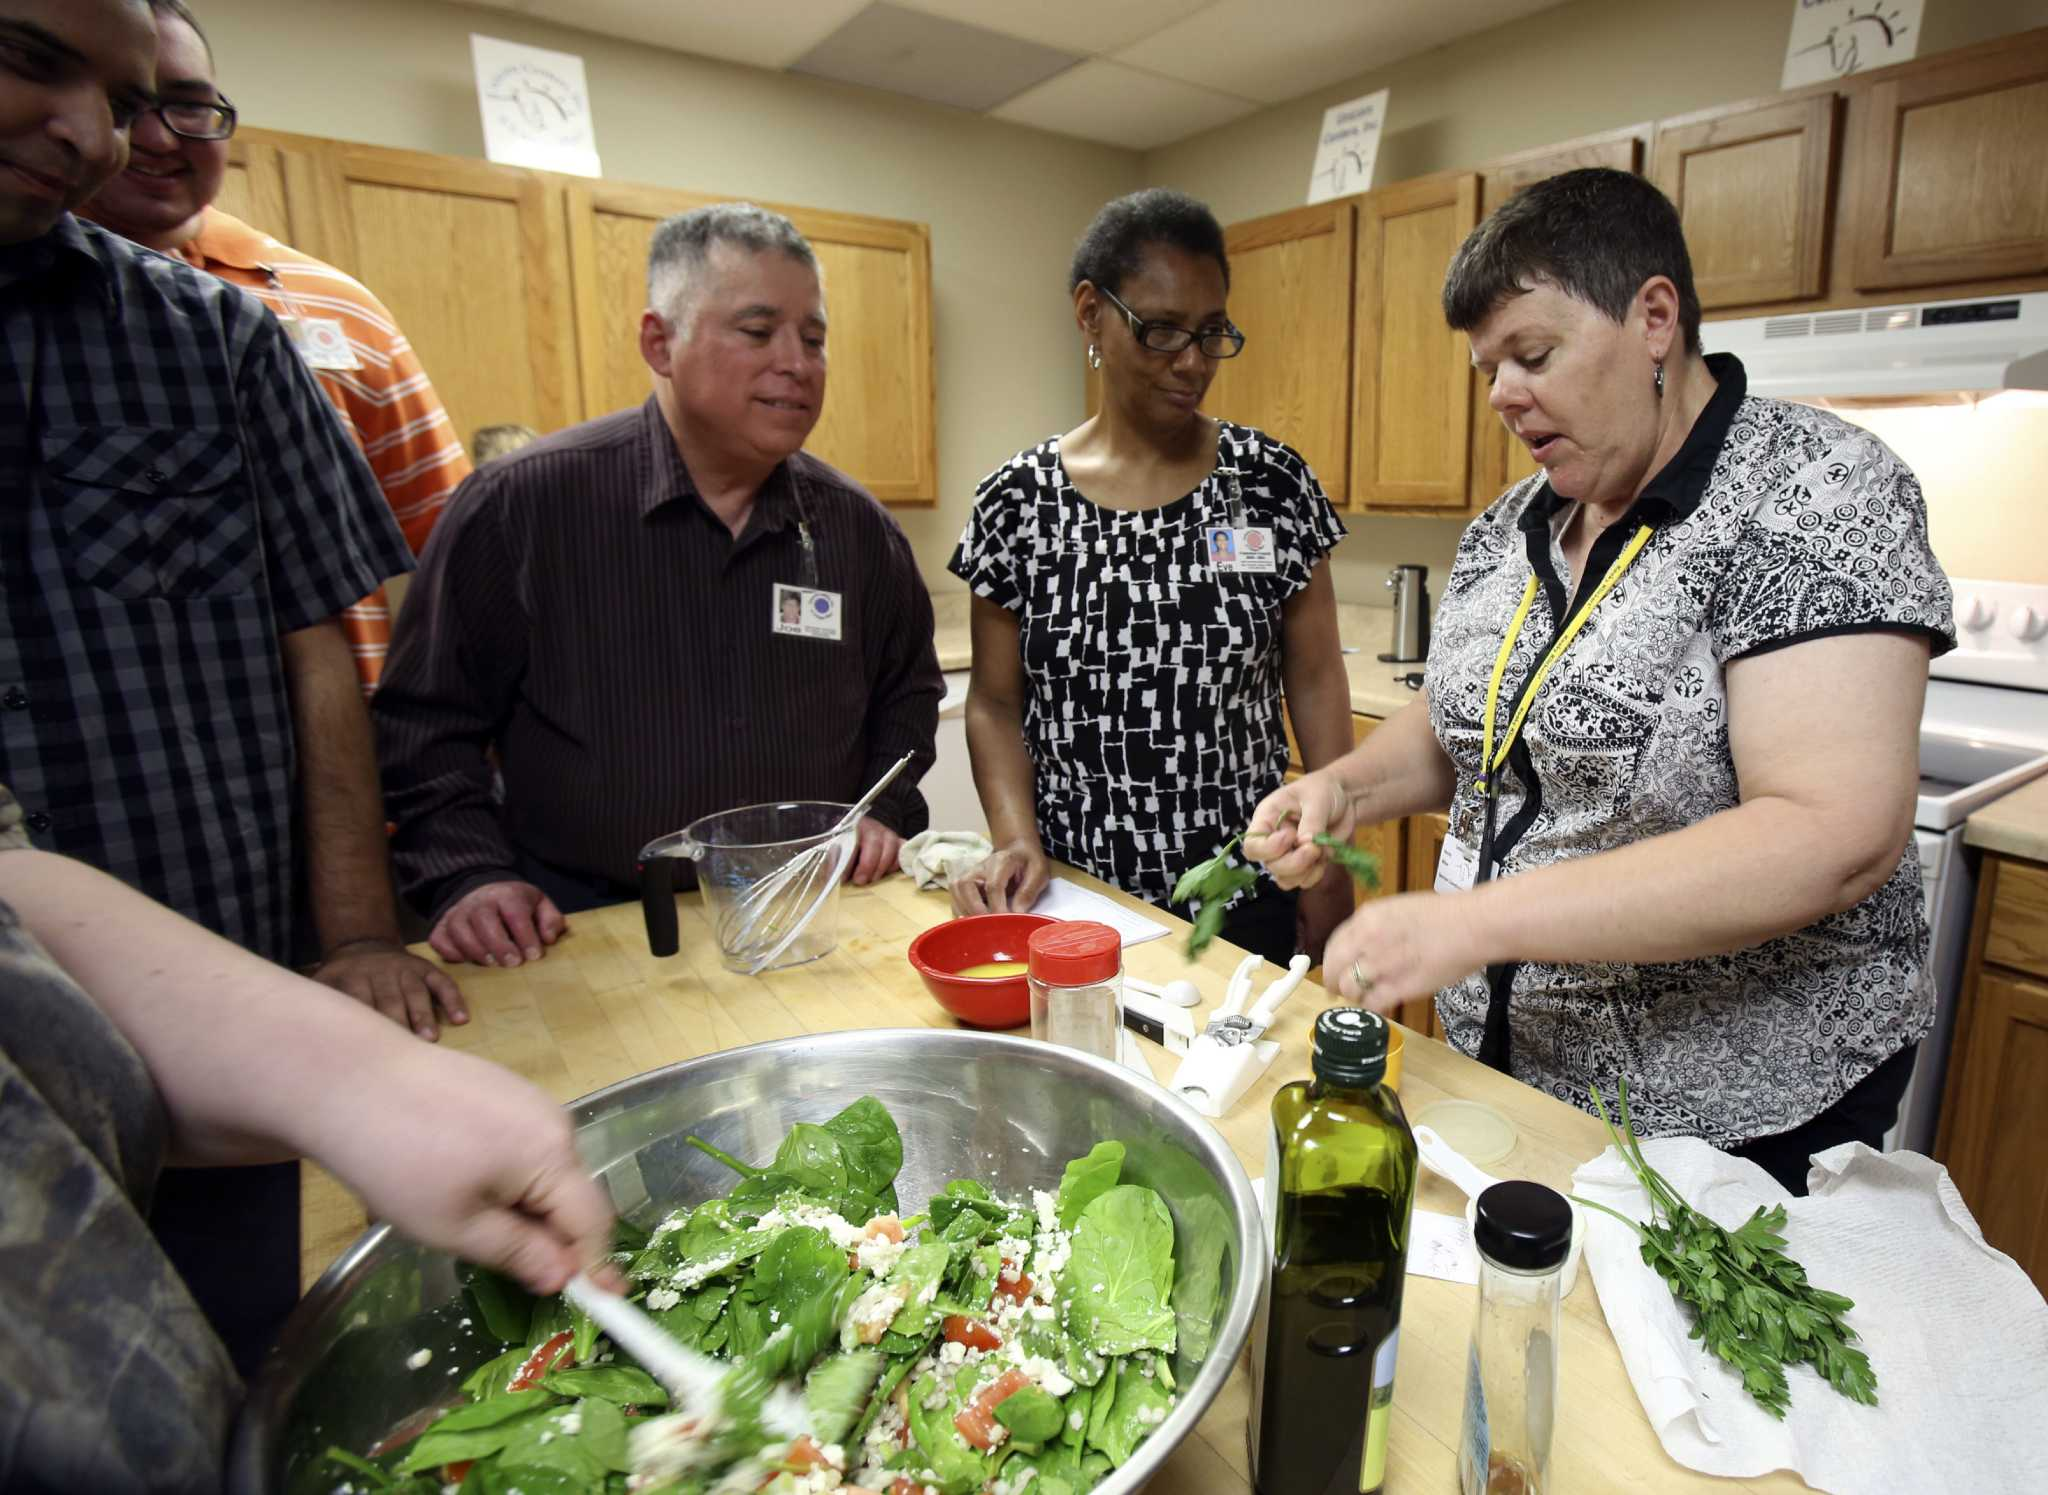 Adults With Disabilities Develop Life Skills Through Cooking